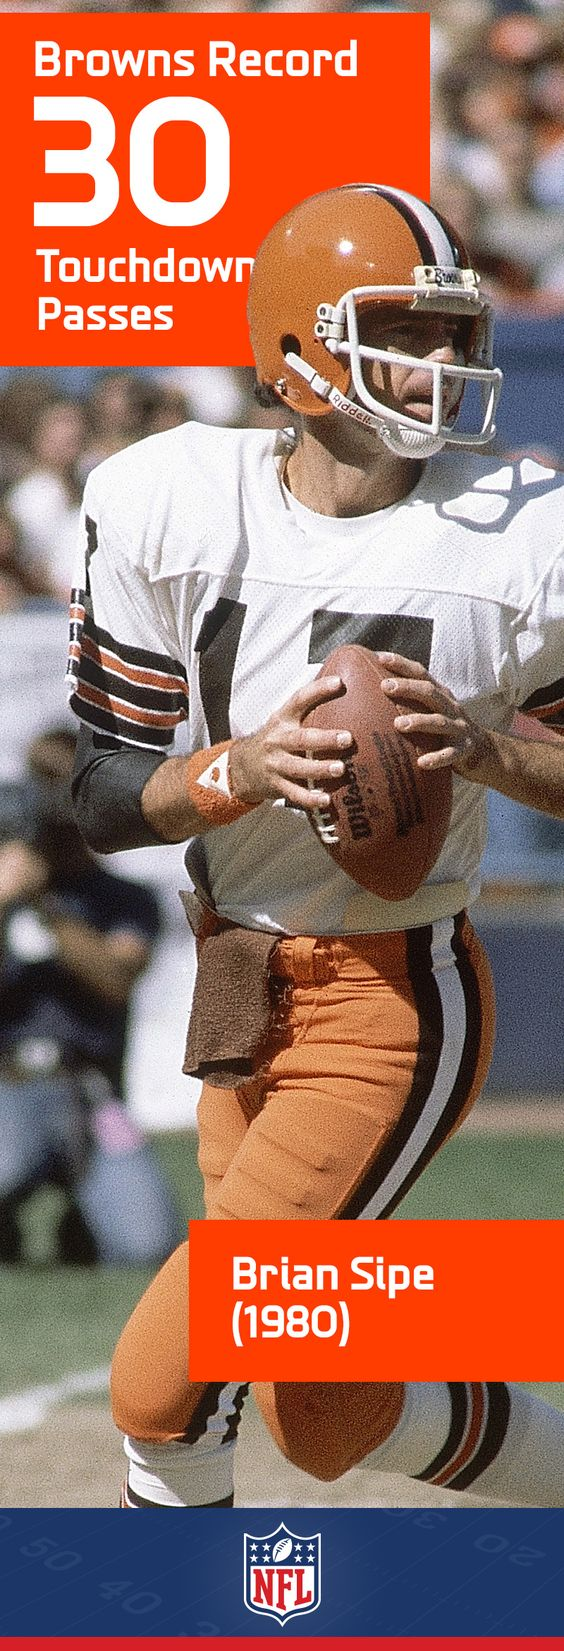 QB Brian Sipe leads all Cleveland Browns quarterbacks with 30 touchdown passes in 1980.